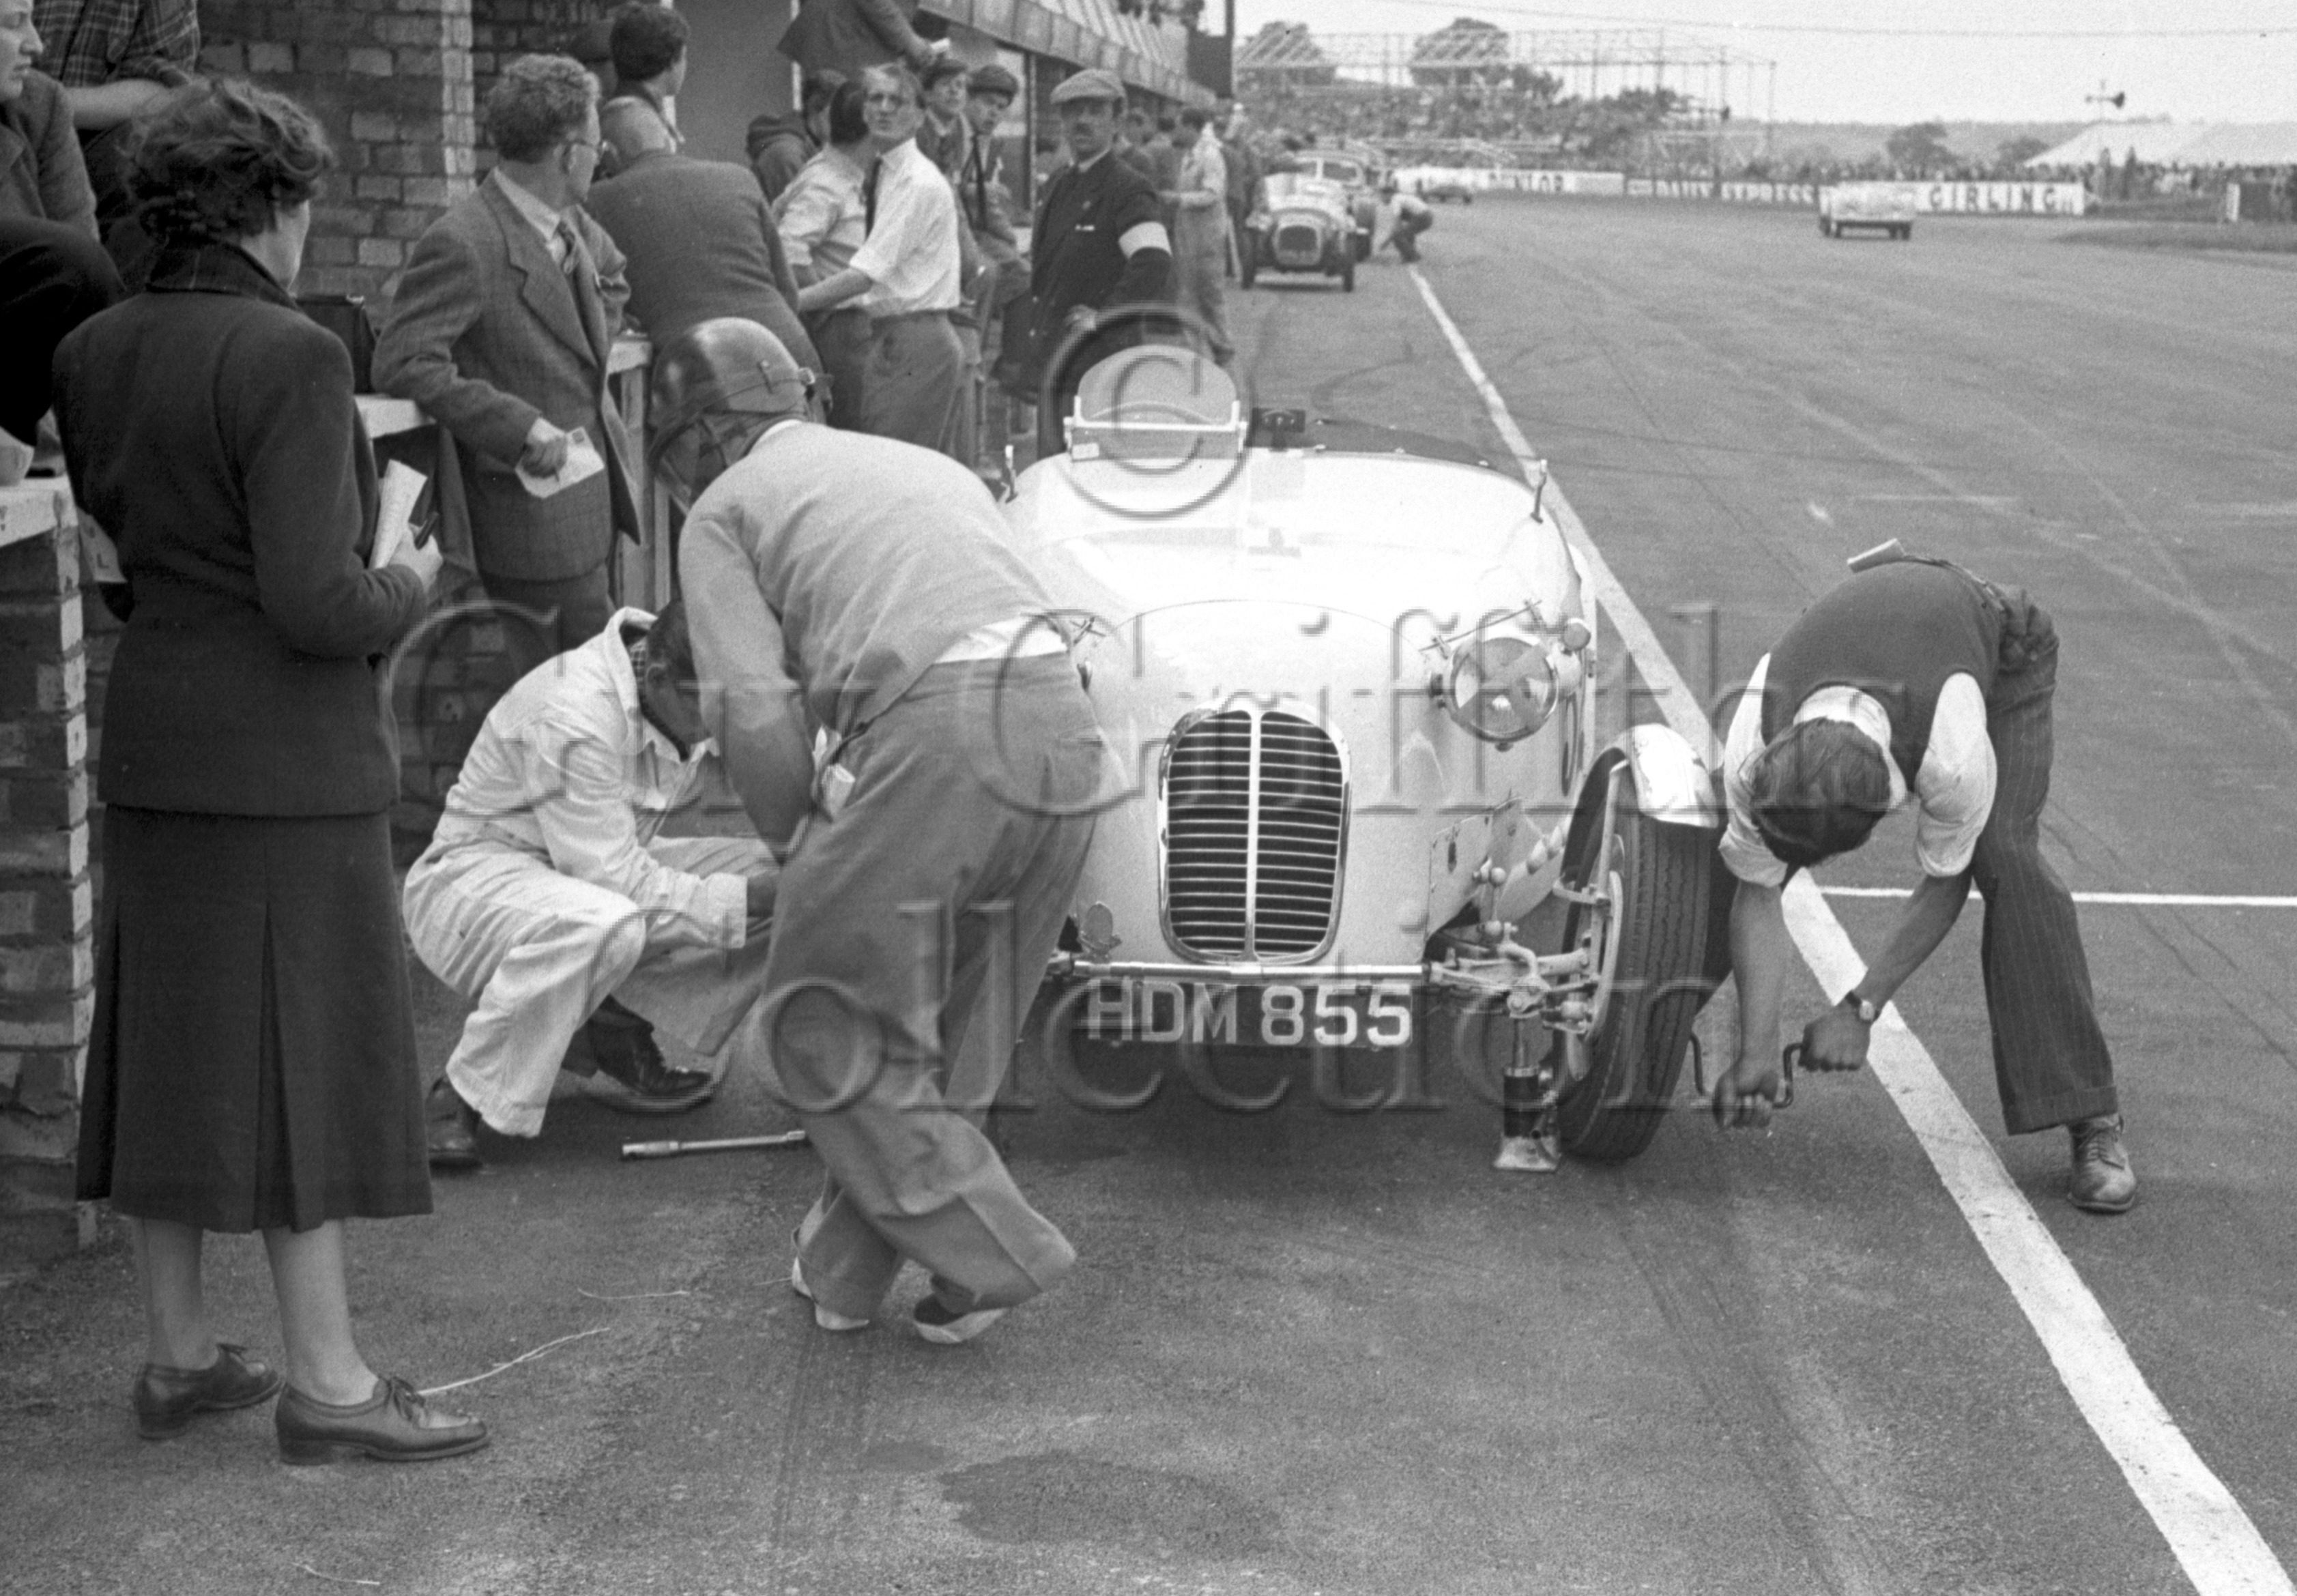 71-446–H-Porteous–Porteous-Buckler–Silverstone–30-08-1952.jpg - The Guy Griffiths Collection